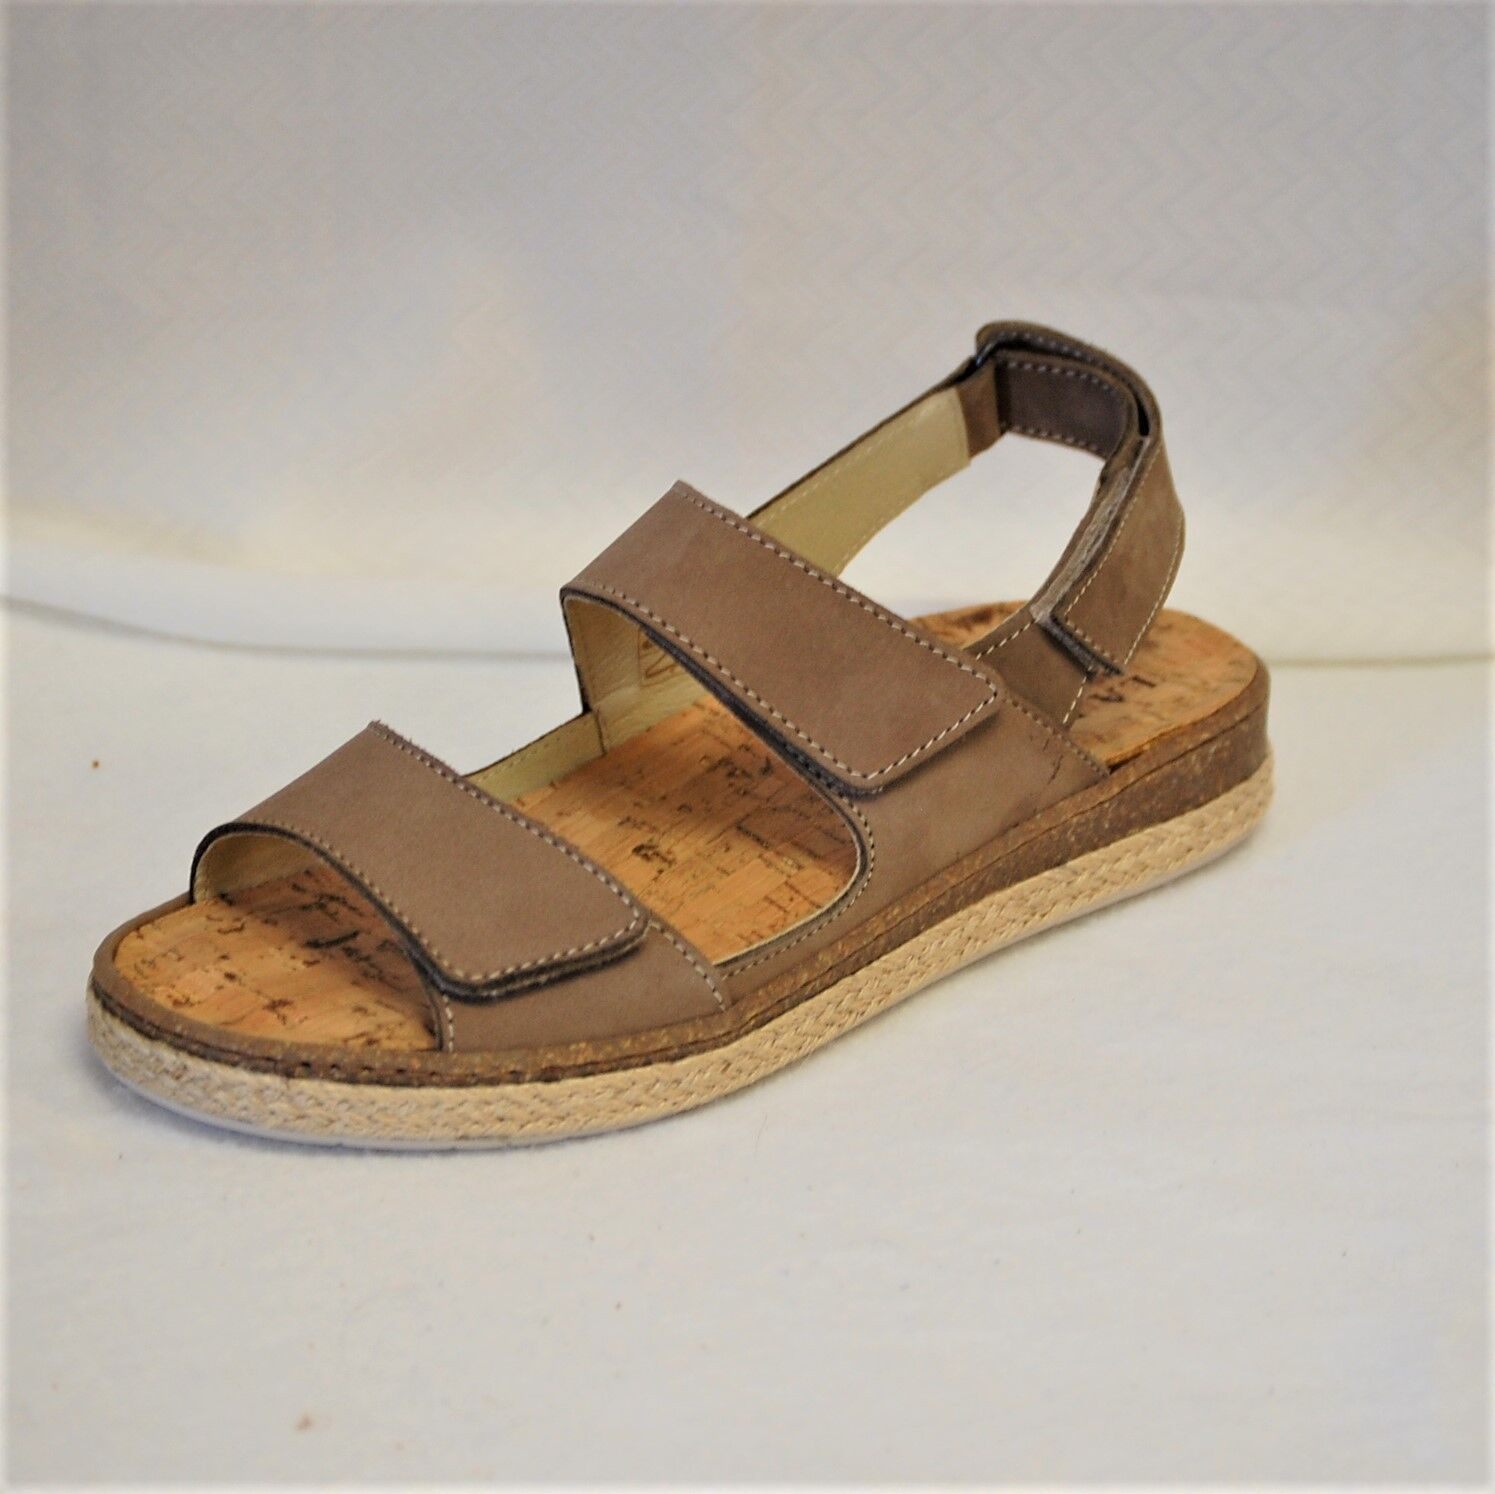 La Plume Pine Sandal with 3 adjustable Straps Coffee NuBuk pelle eur 38